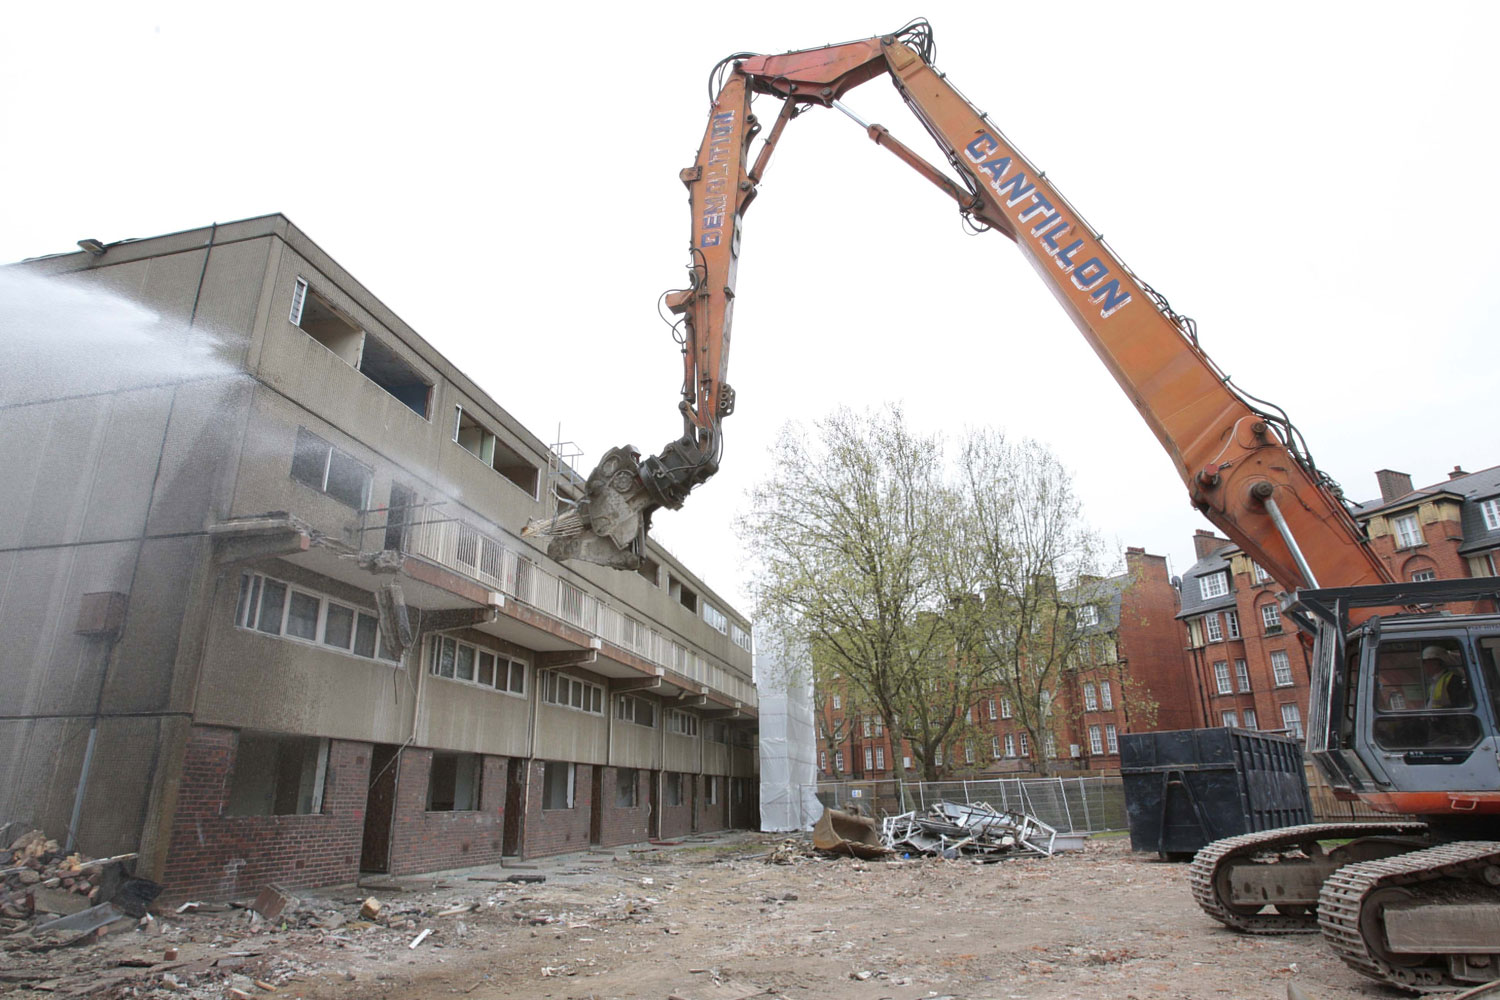 Aylesbury Estate demolition underway